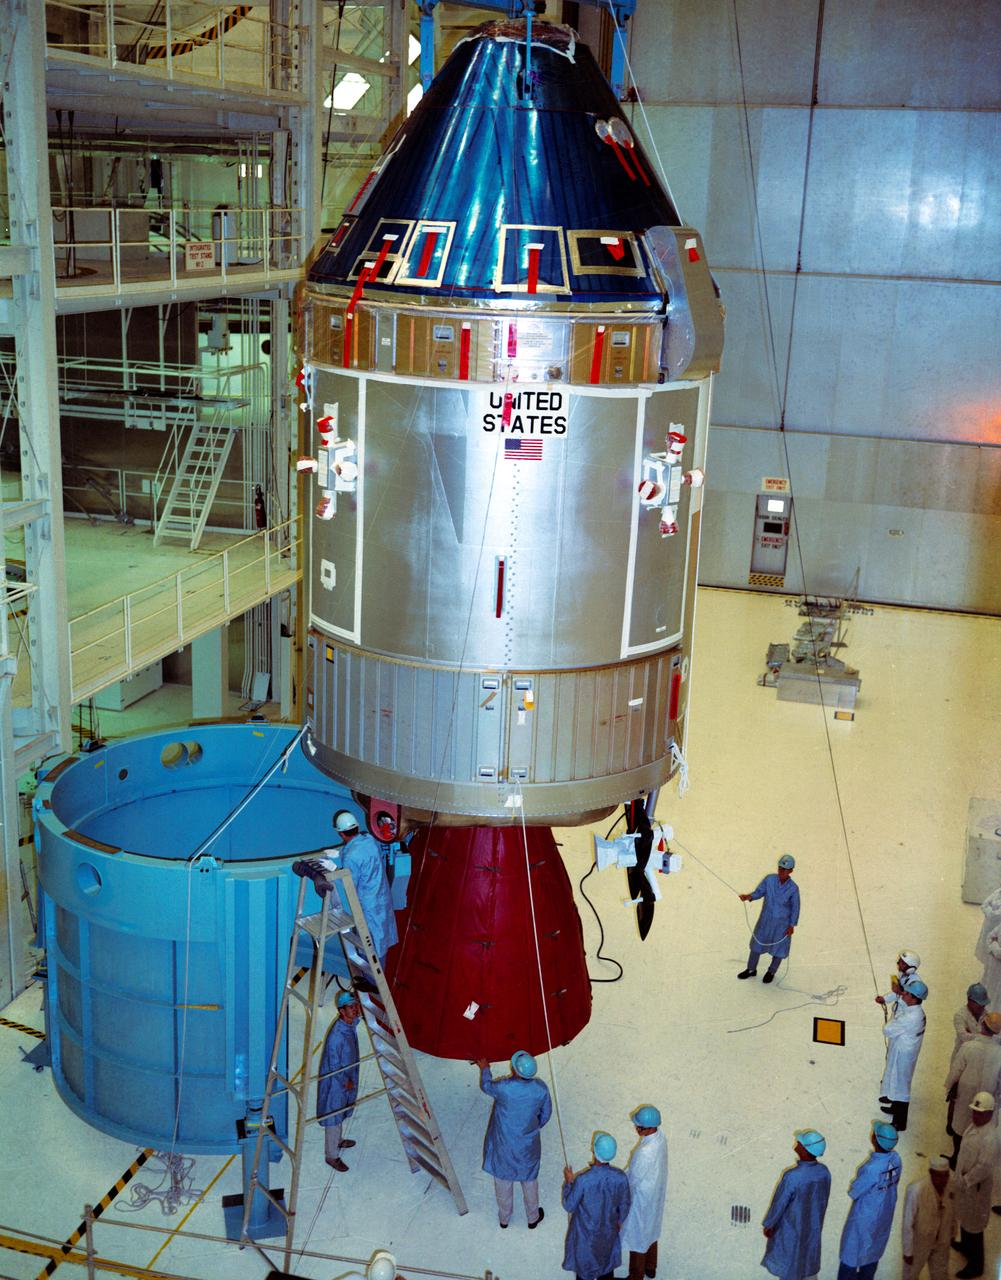 Apollo Spacecraft 107 Command and Service Modules (CSM), which was scheduled to be flown on the Apollo 11 lunar landing mission, shown being moved from the work stand for mating to Spacecraft Lunar Module Adapter (SLA) at the Kennedy Space Center's (KSC) Manned Spacecraft Operations Building. (Photo: NASA.)